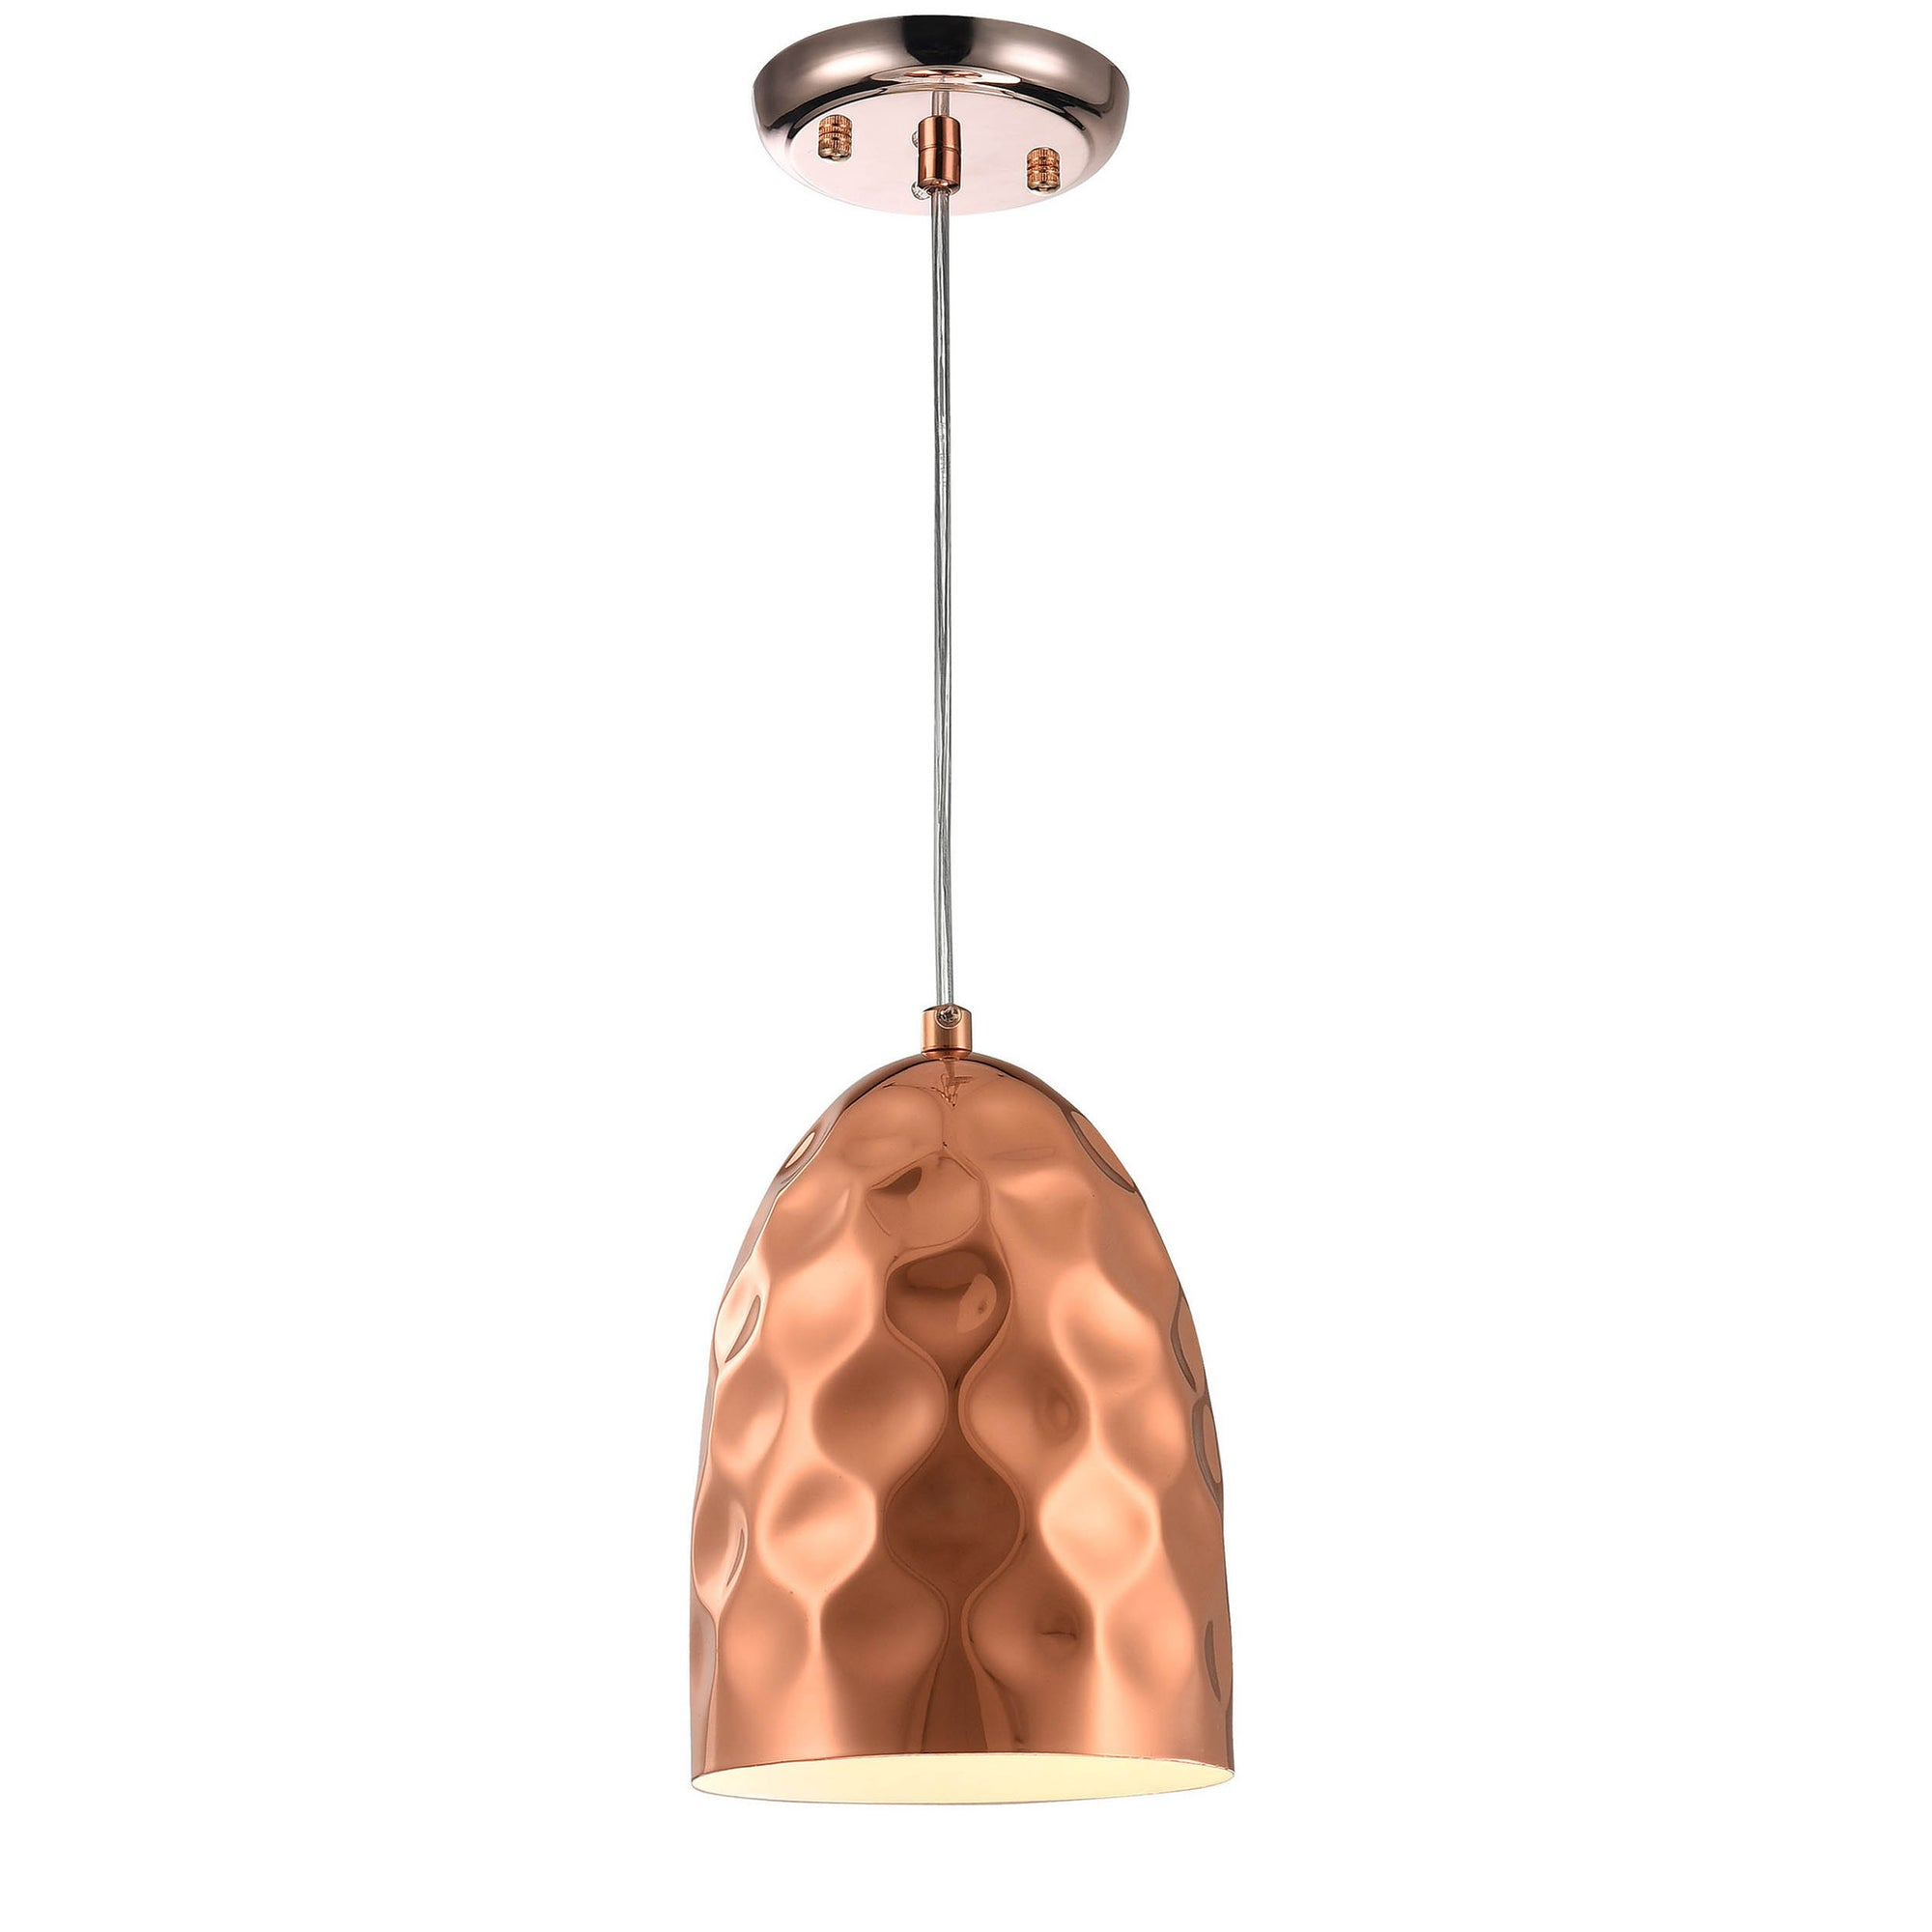 Pendant Lamp - Hammered Copper Industrial Pendant Light F4864/1